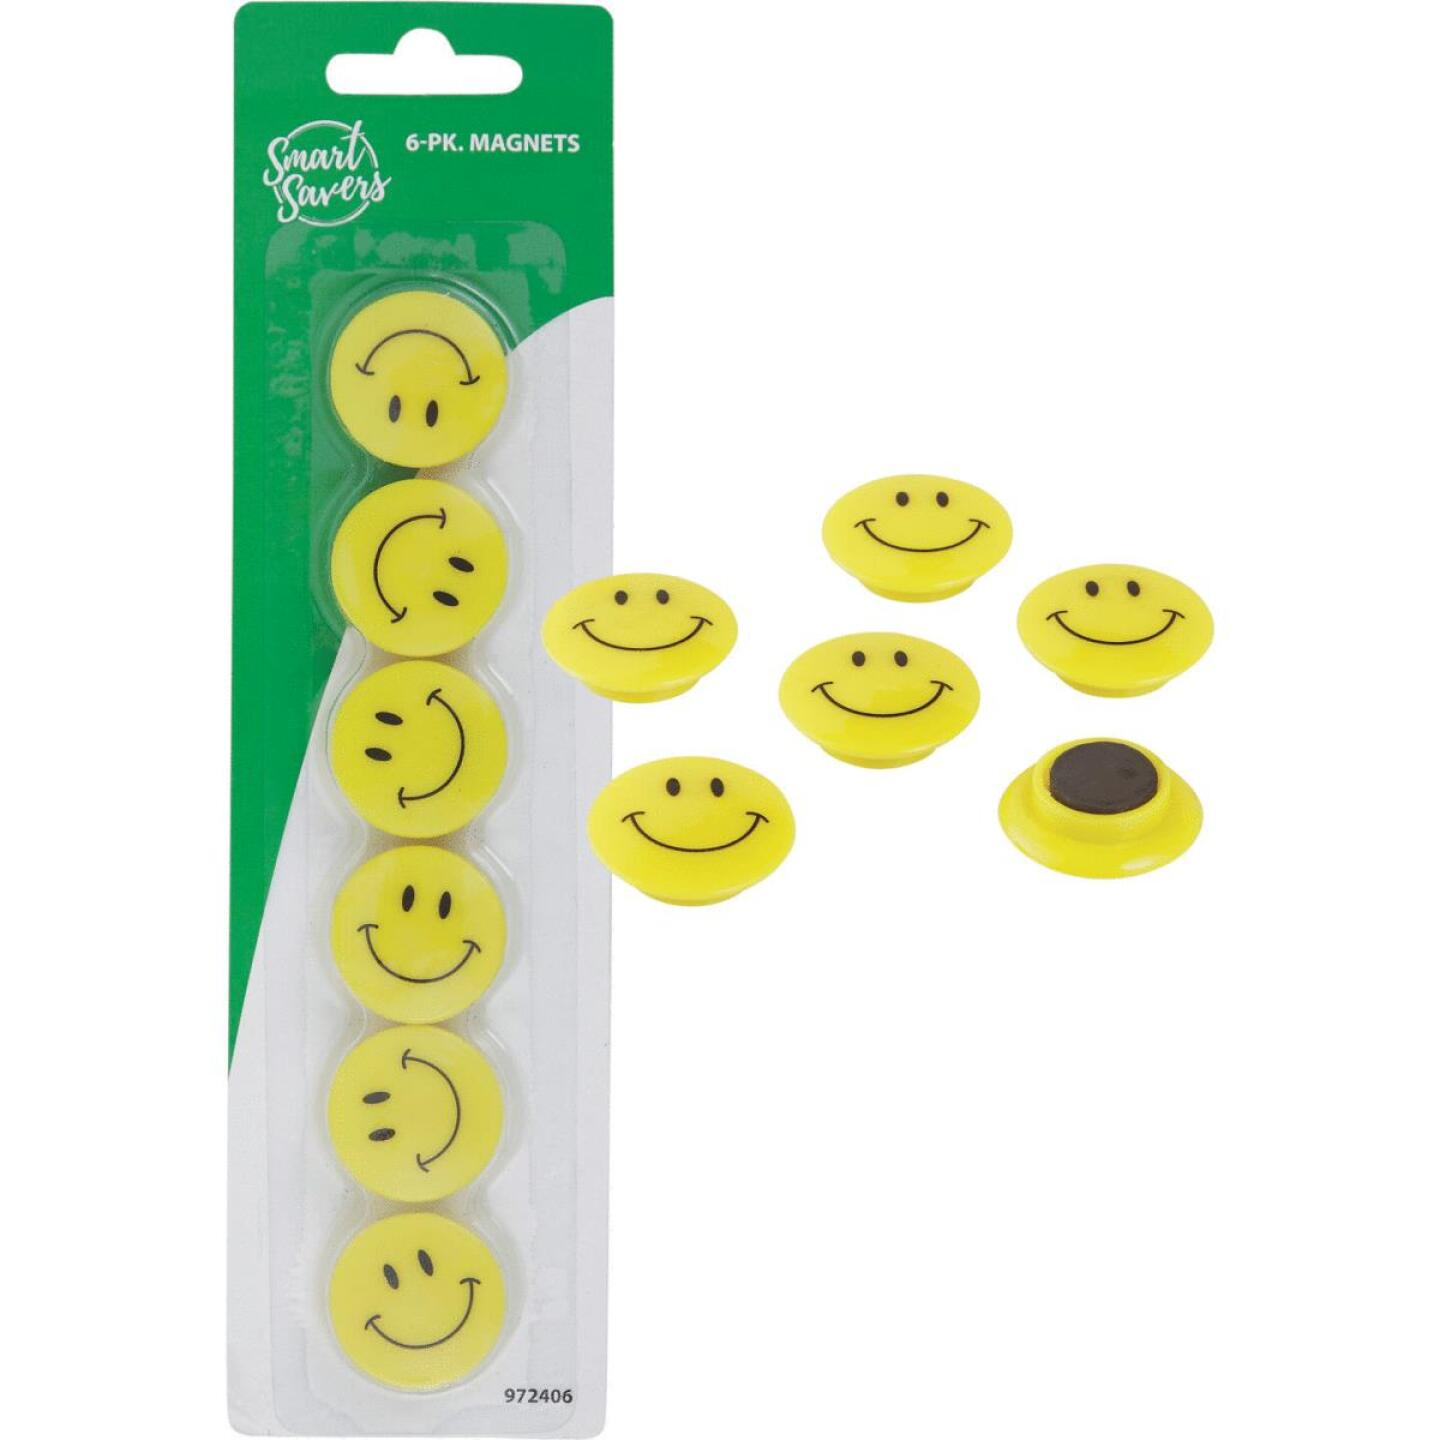 Smart Savers 1.18 In. Dia. Yellow Magnets (6-Pack) Image 1